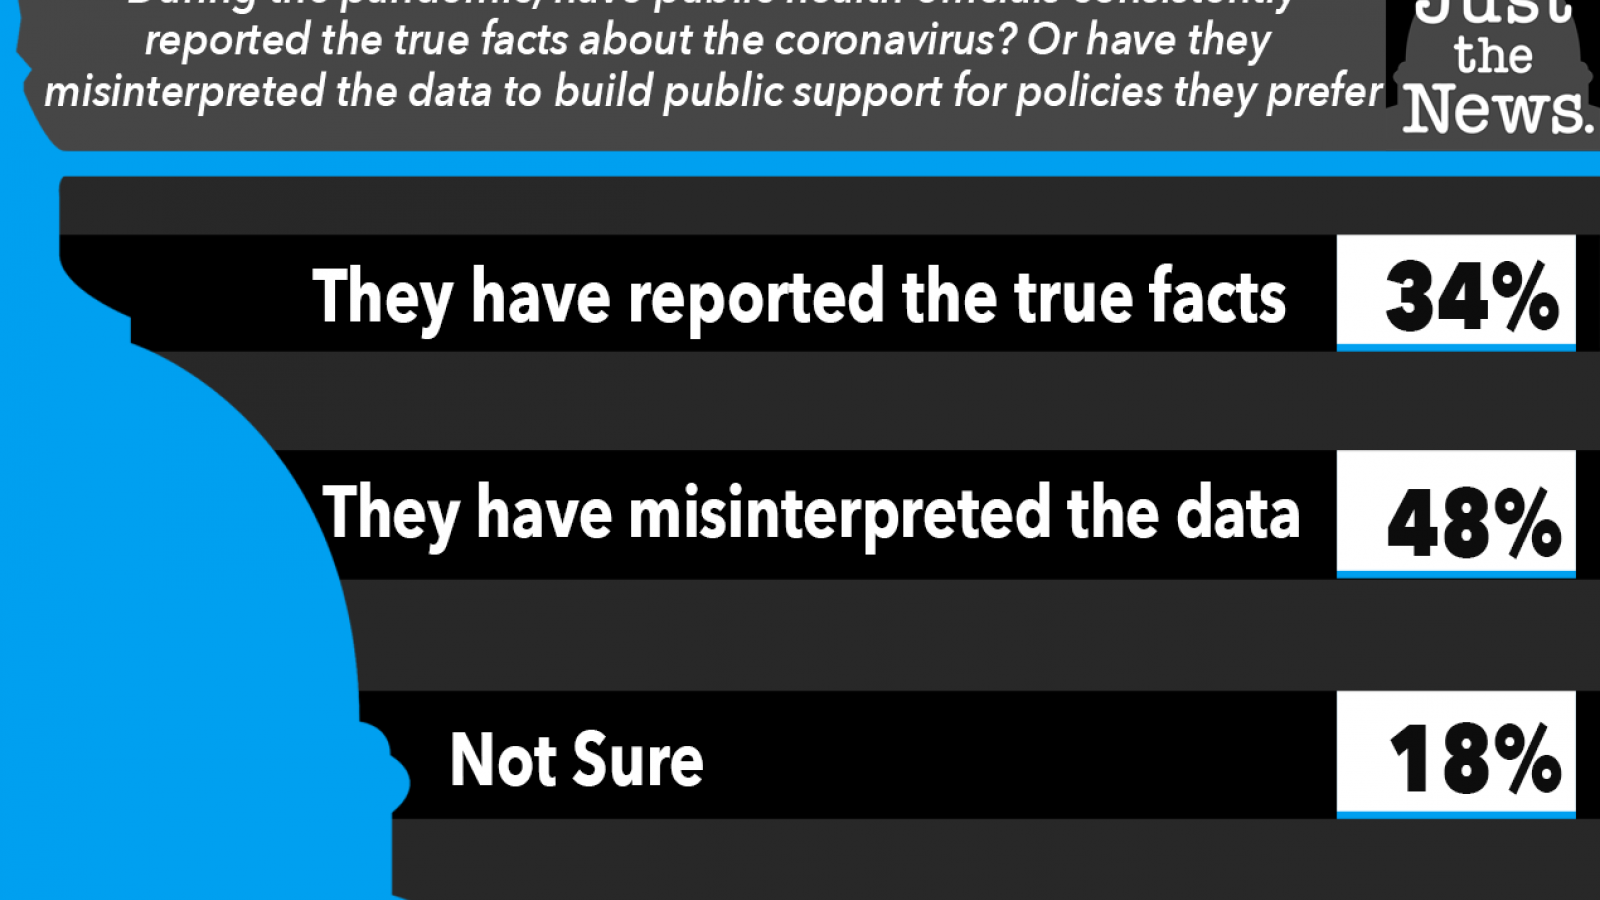 Just the News, Have public health officials reported consistently true facts about coronavirus?